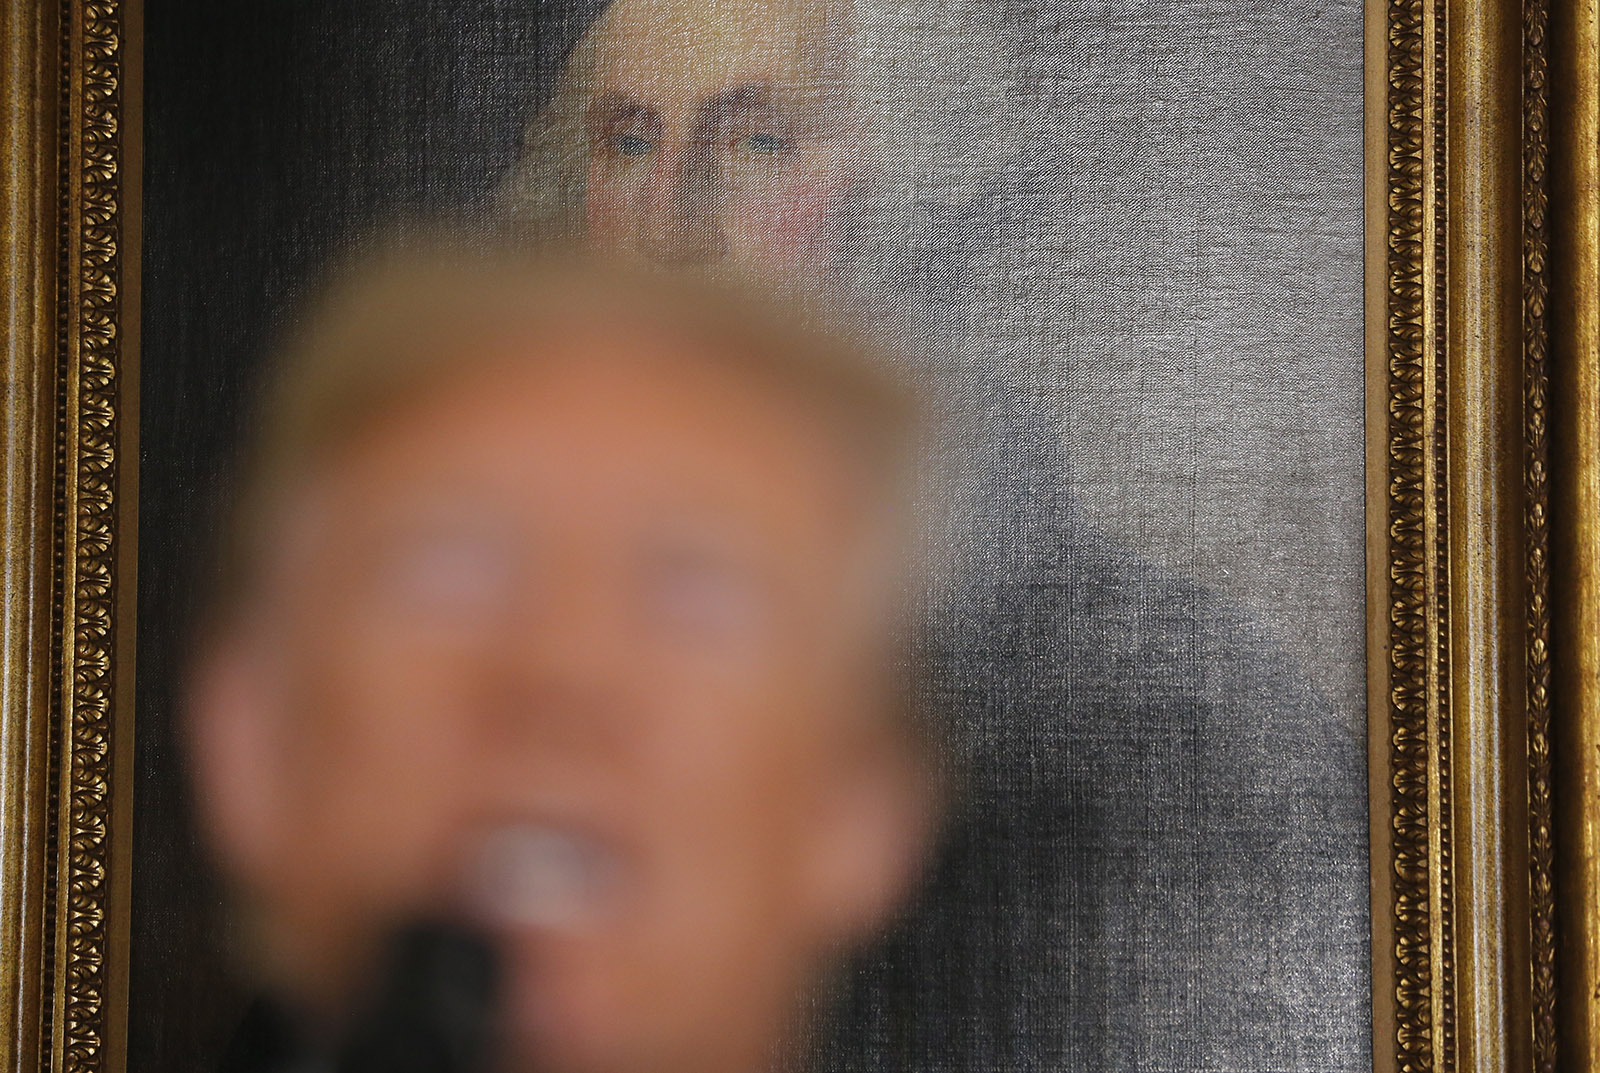 President Trump announcing the US's withdrawal from the Iran nuclear agreement in front of a portrait of George Washington in the White House, May 8, 2018